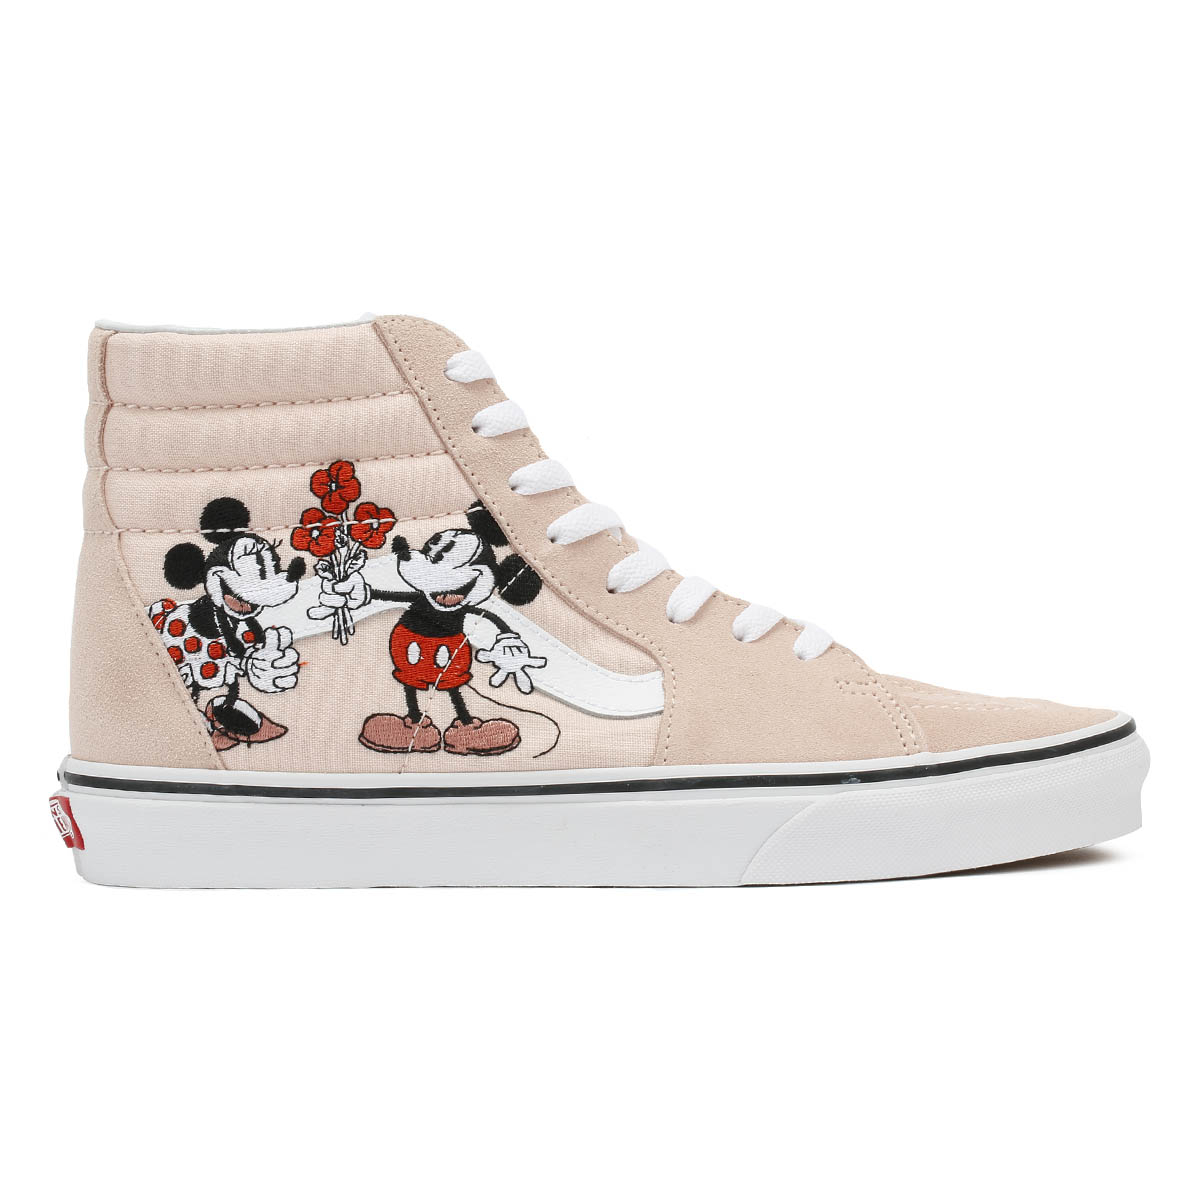 amp; Sk8 Skate Trainers Unisex Vans Pink Minnie Sport Mickey Disney Shoes hi Casual CqTgY